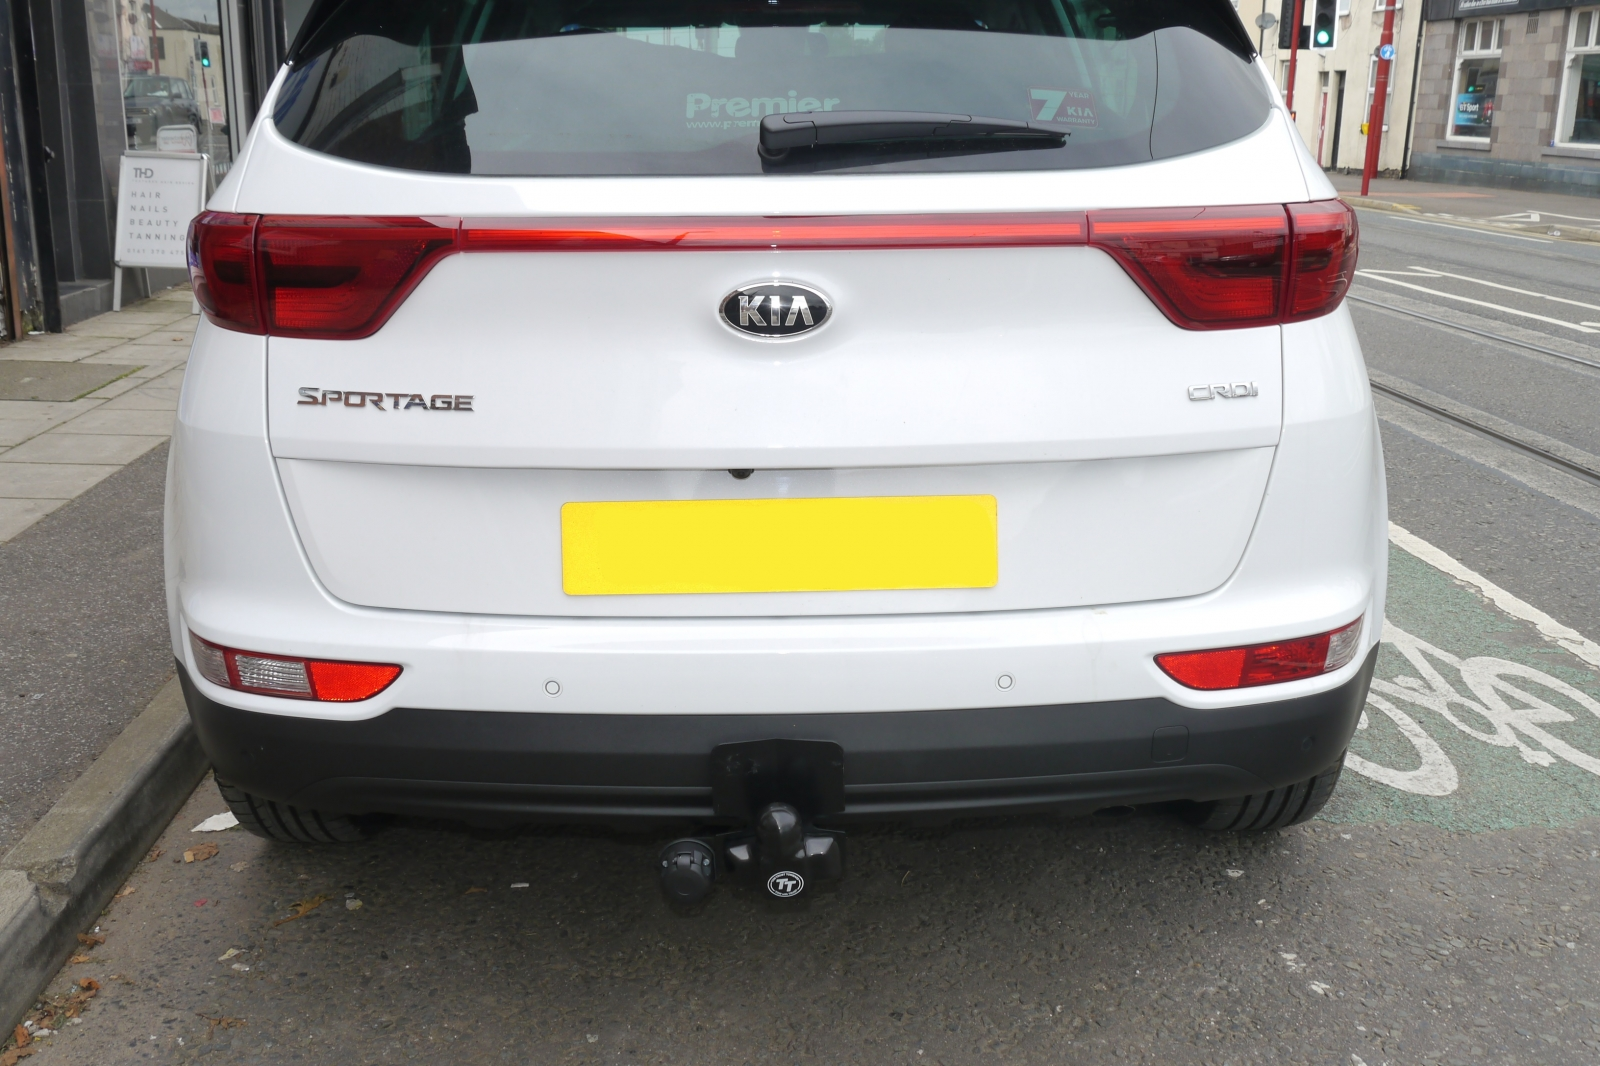 Gallery 2017 Kia Sportage Fixed Towbar With 13 Pin Electrics Tow Bar Greater Manchester